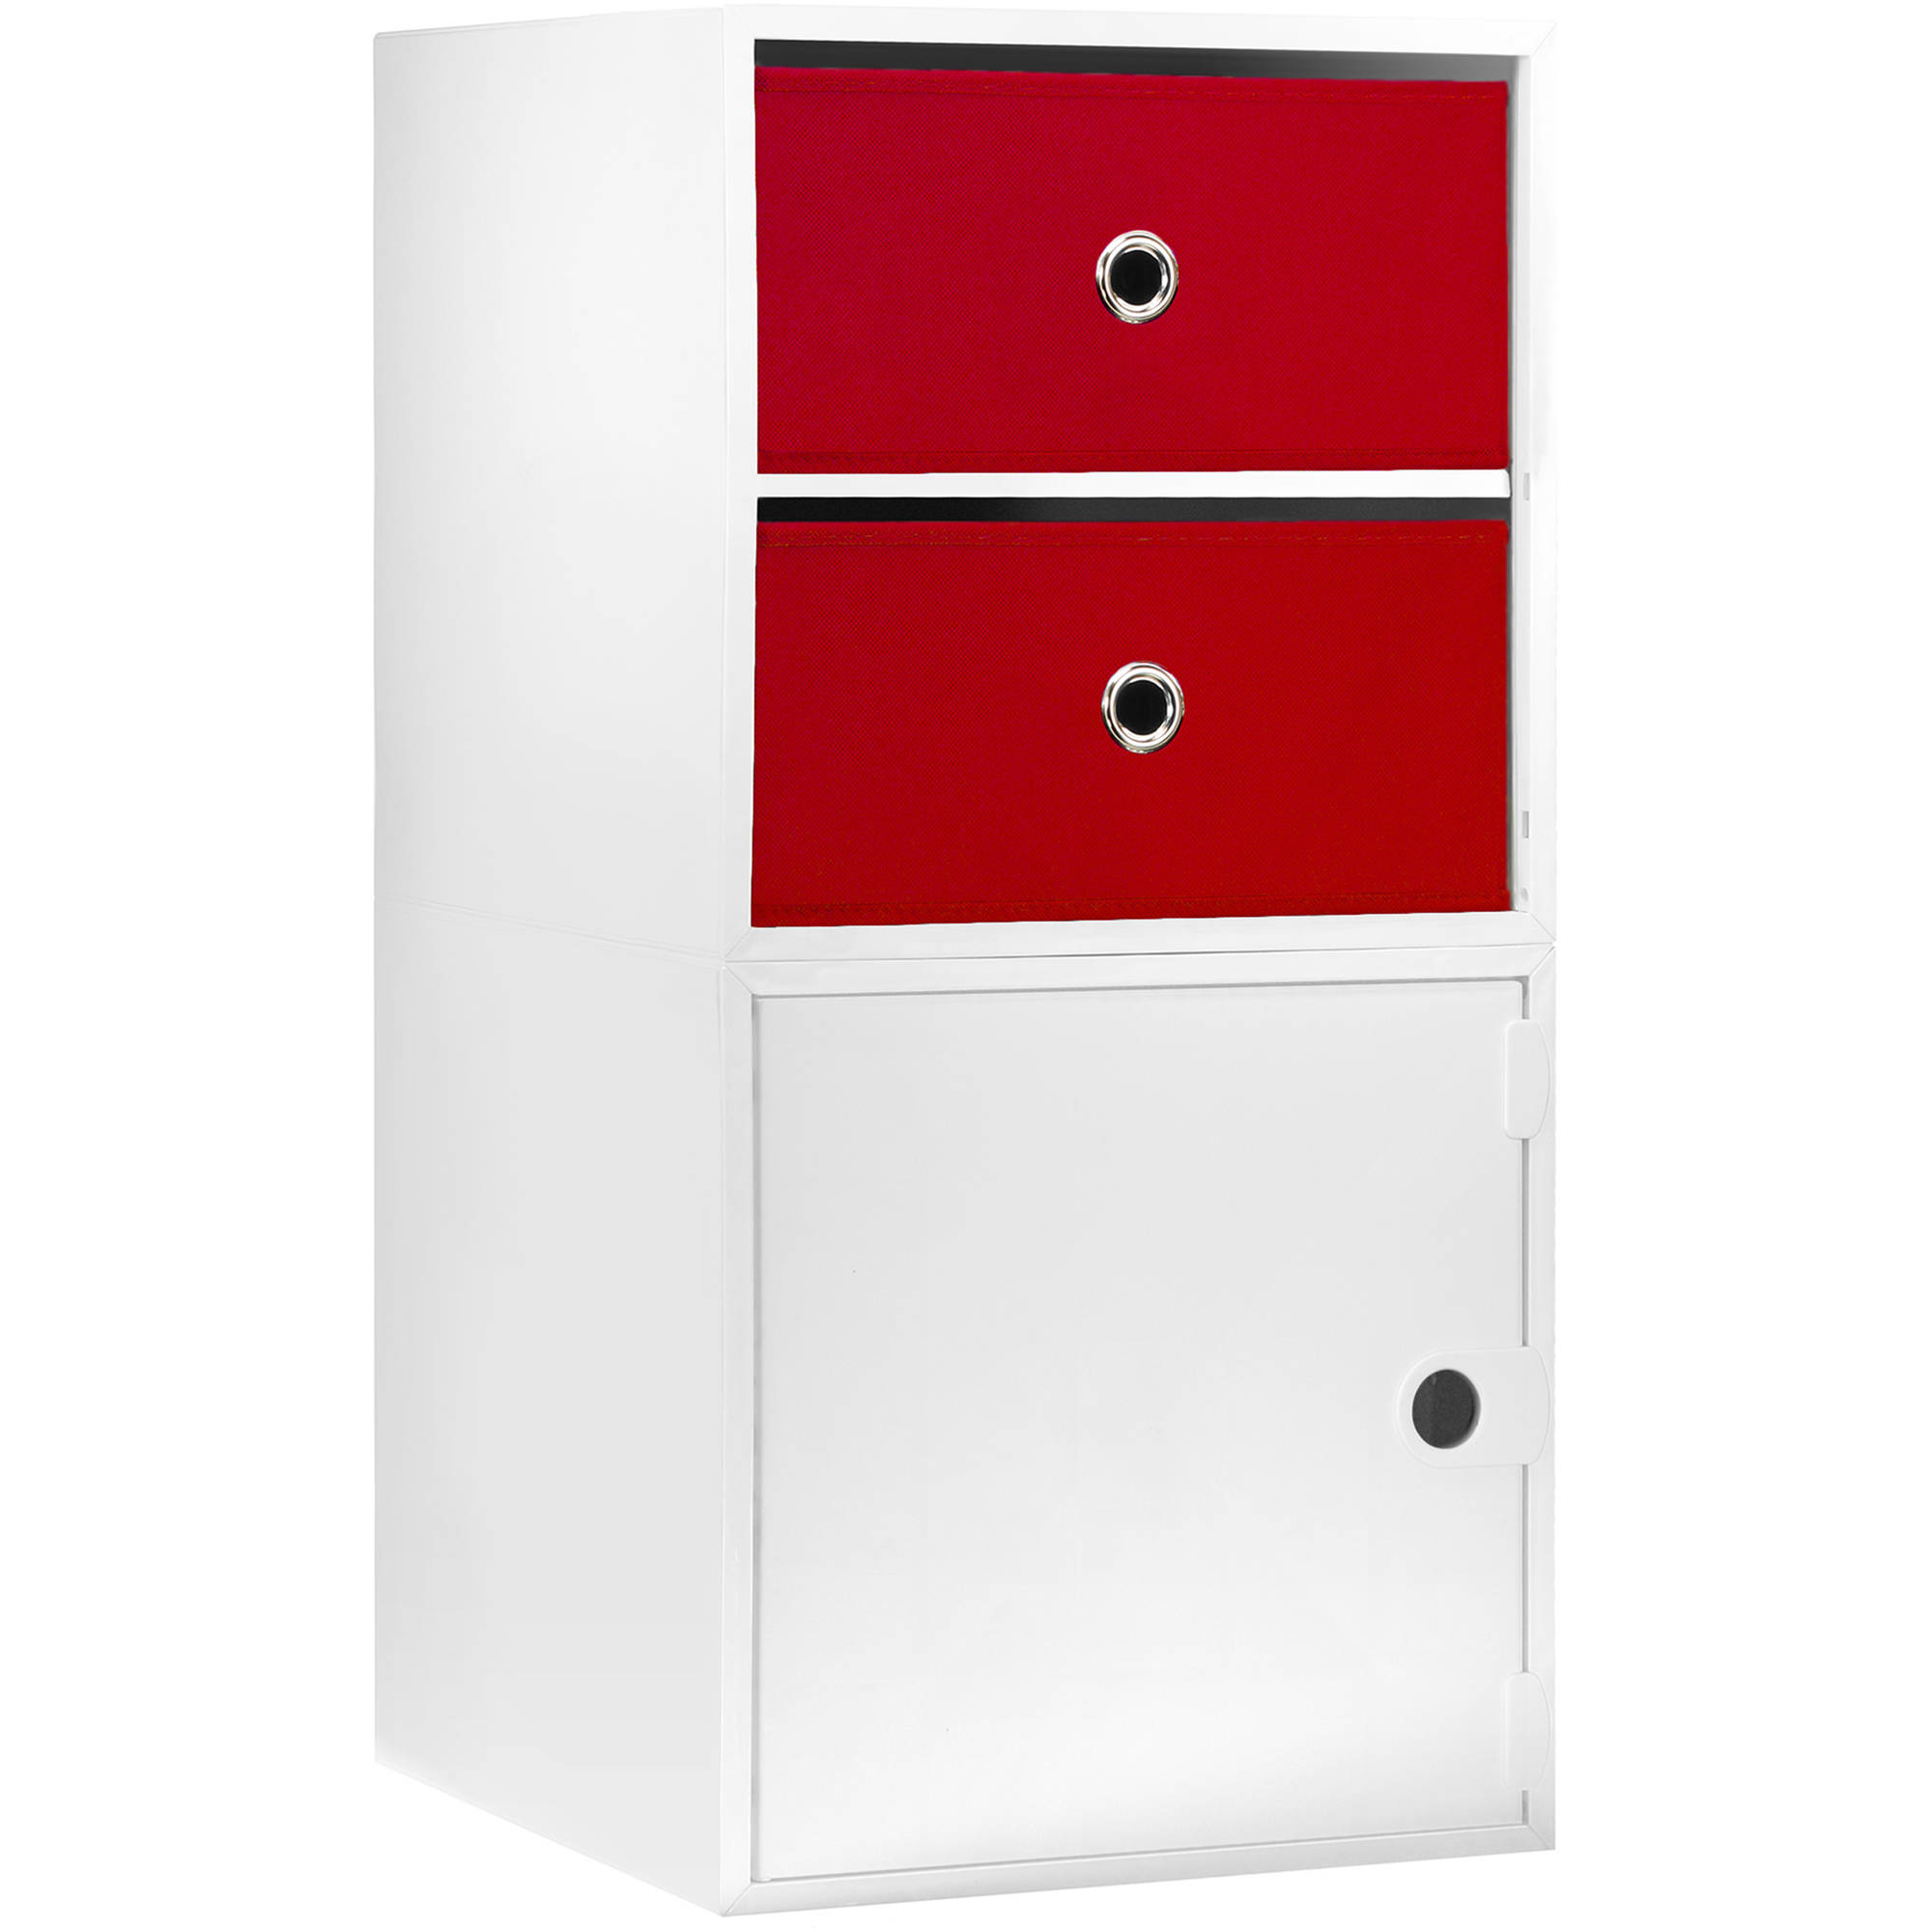 iCube 2-Drawer Nightstand, White with Red Drawers by iCube